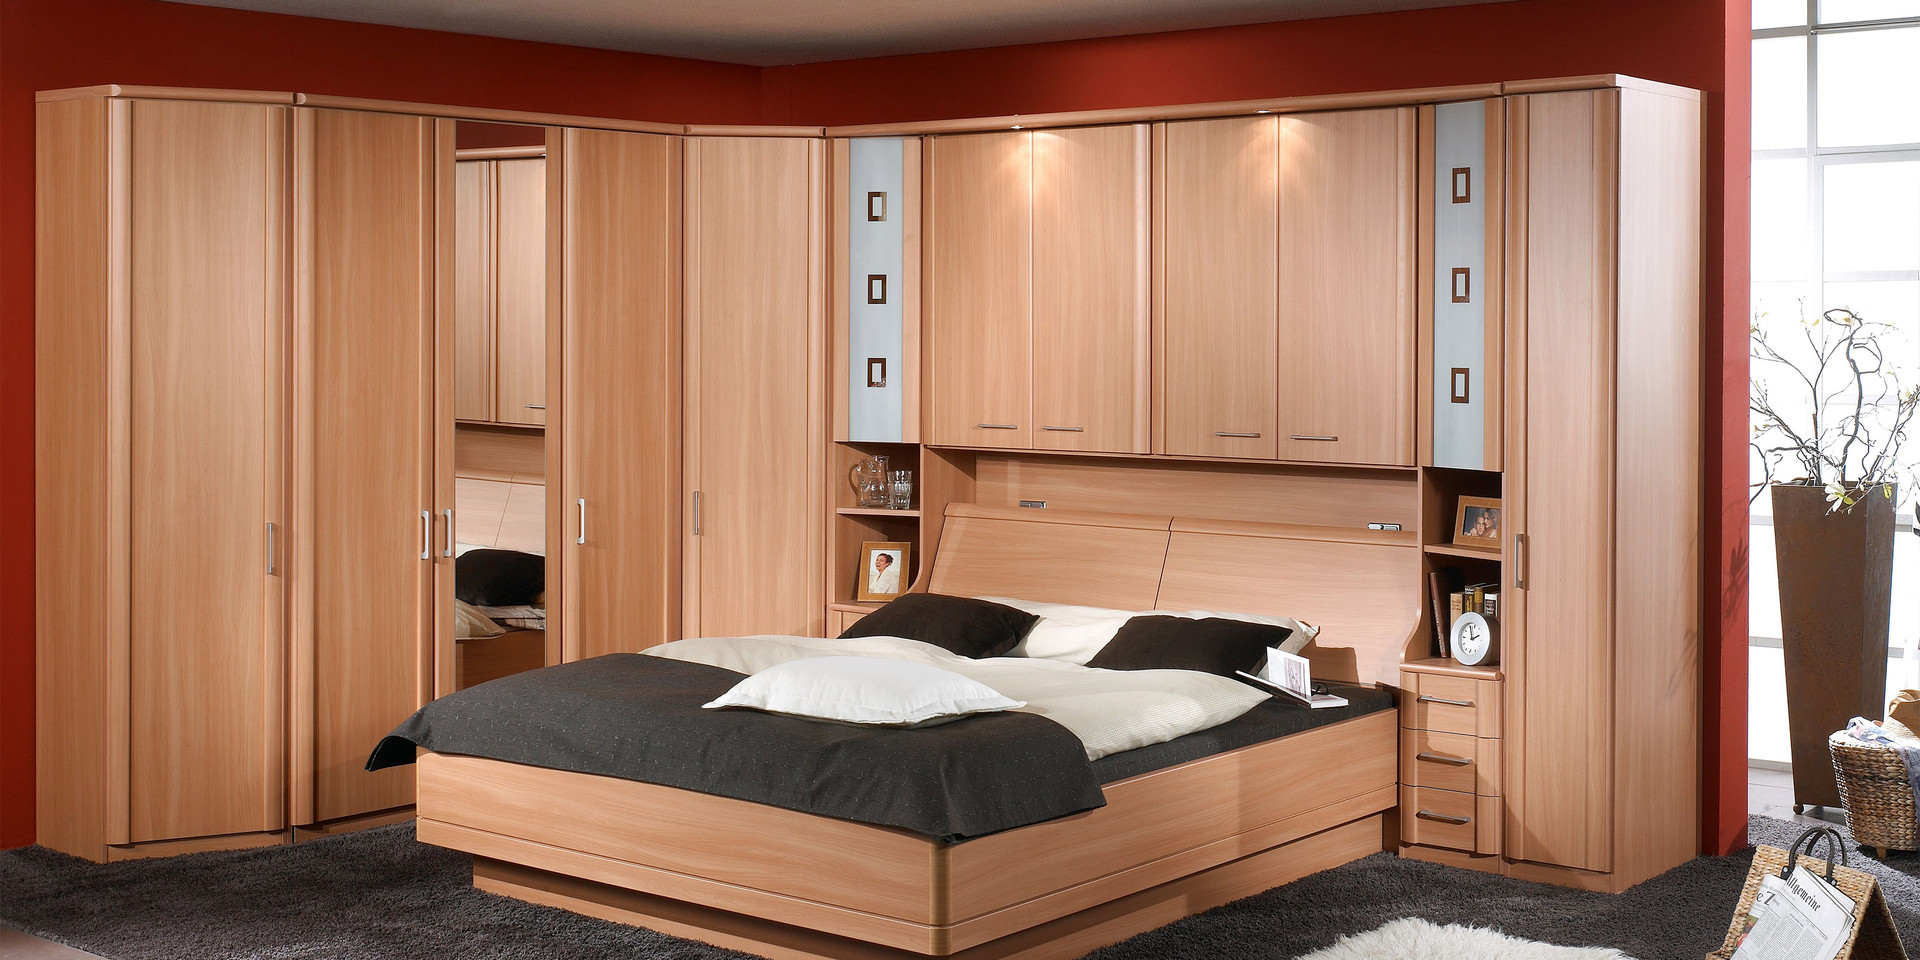 schlafzimmer luxor system programm wohndesign und inneneinrichtung. Black Bedroom Furniture Sets. Home Design Ideas